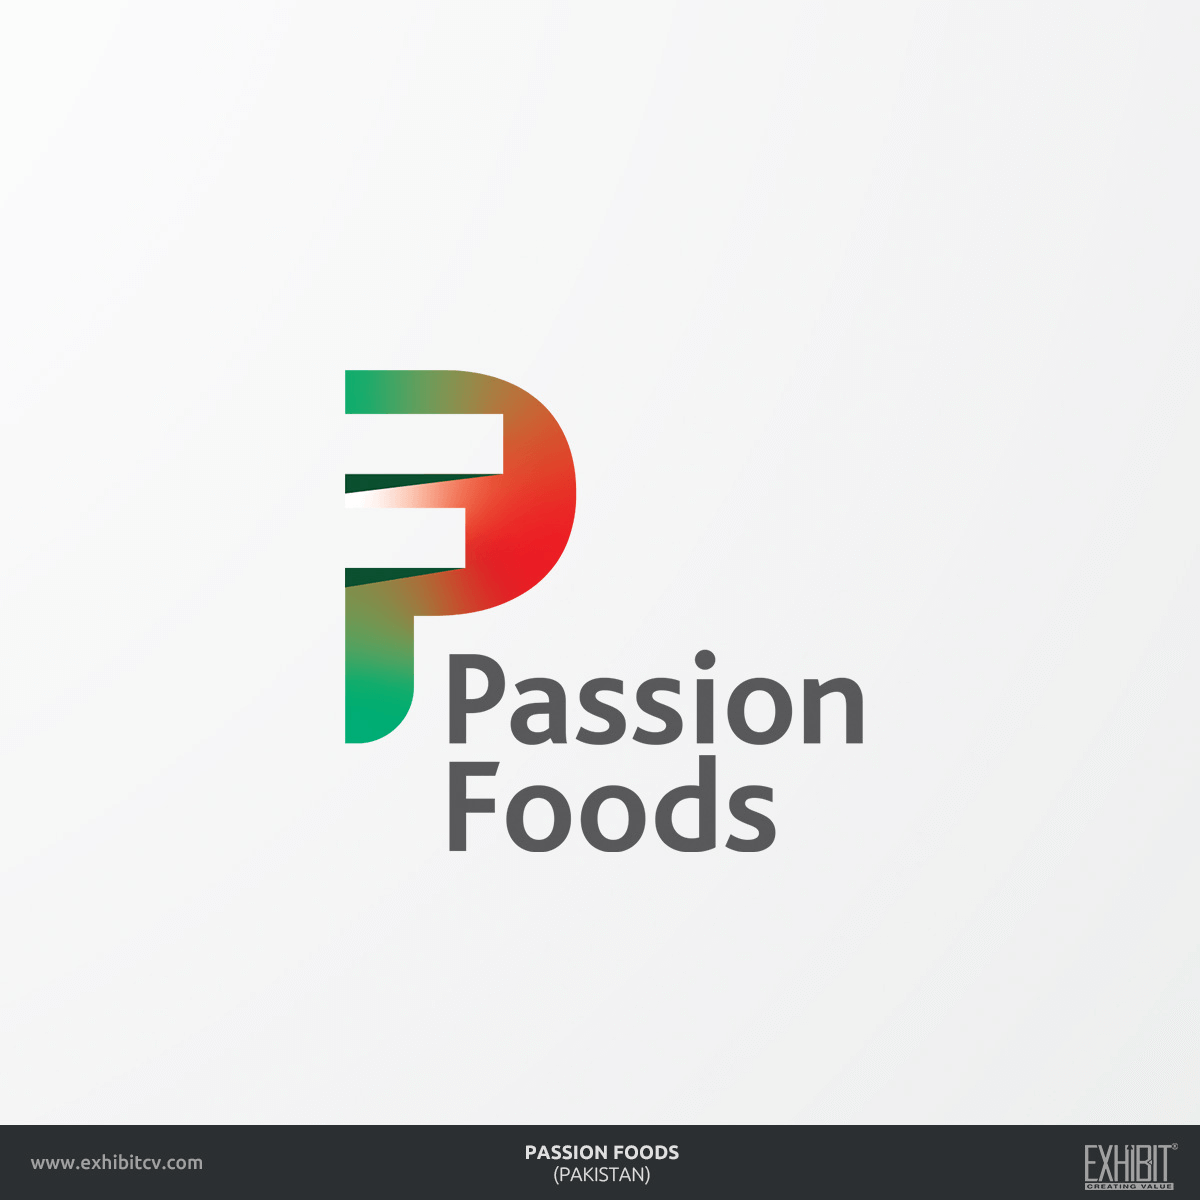 Passion Foods